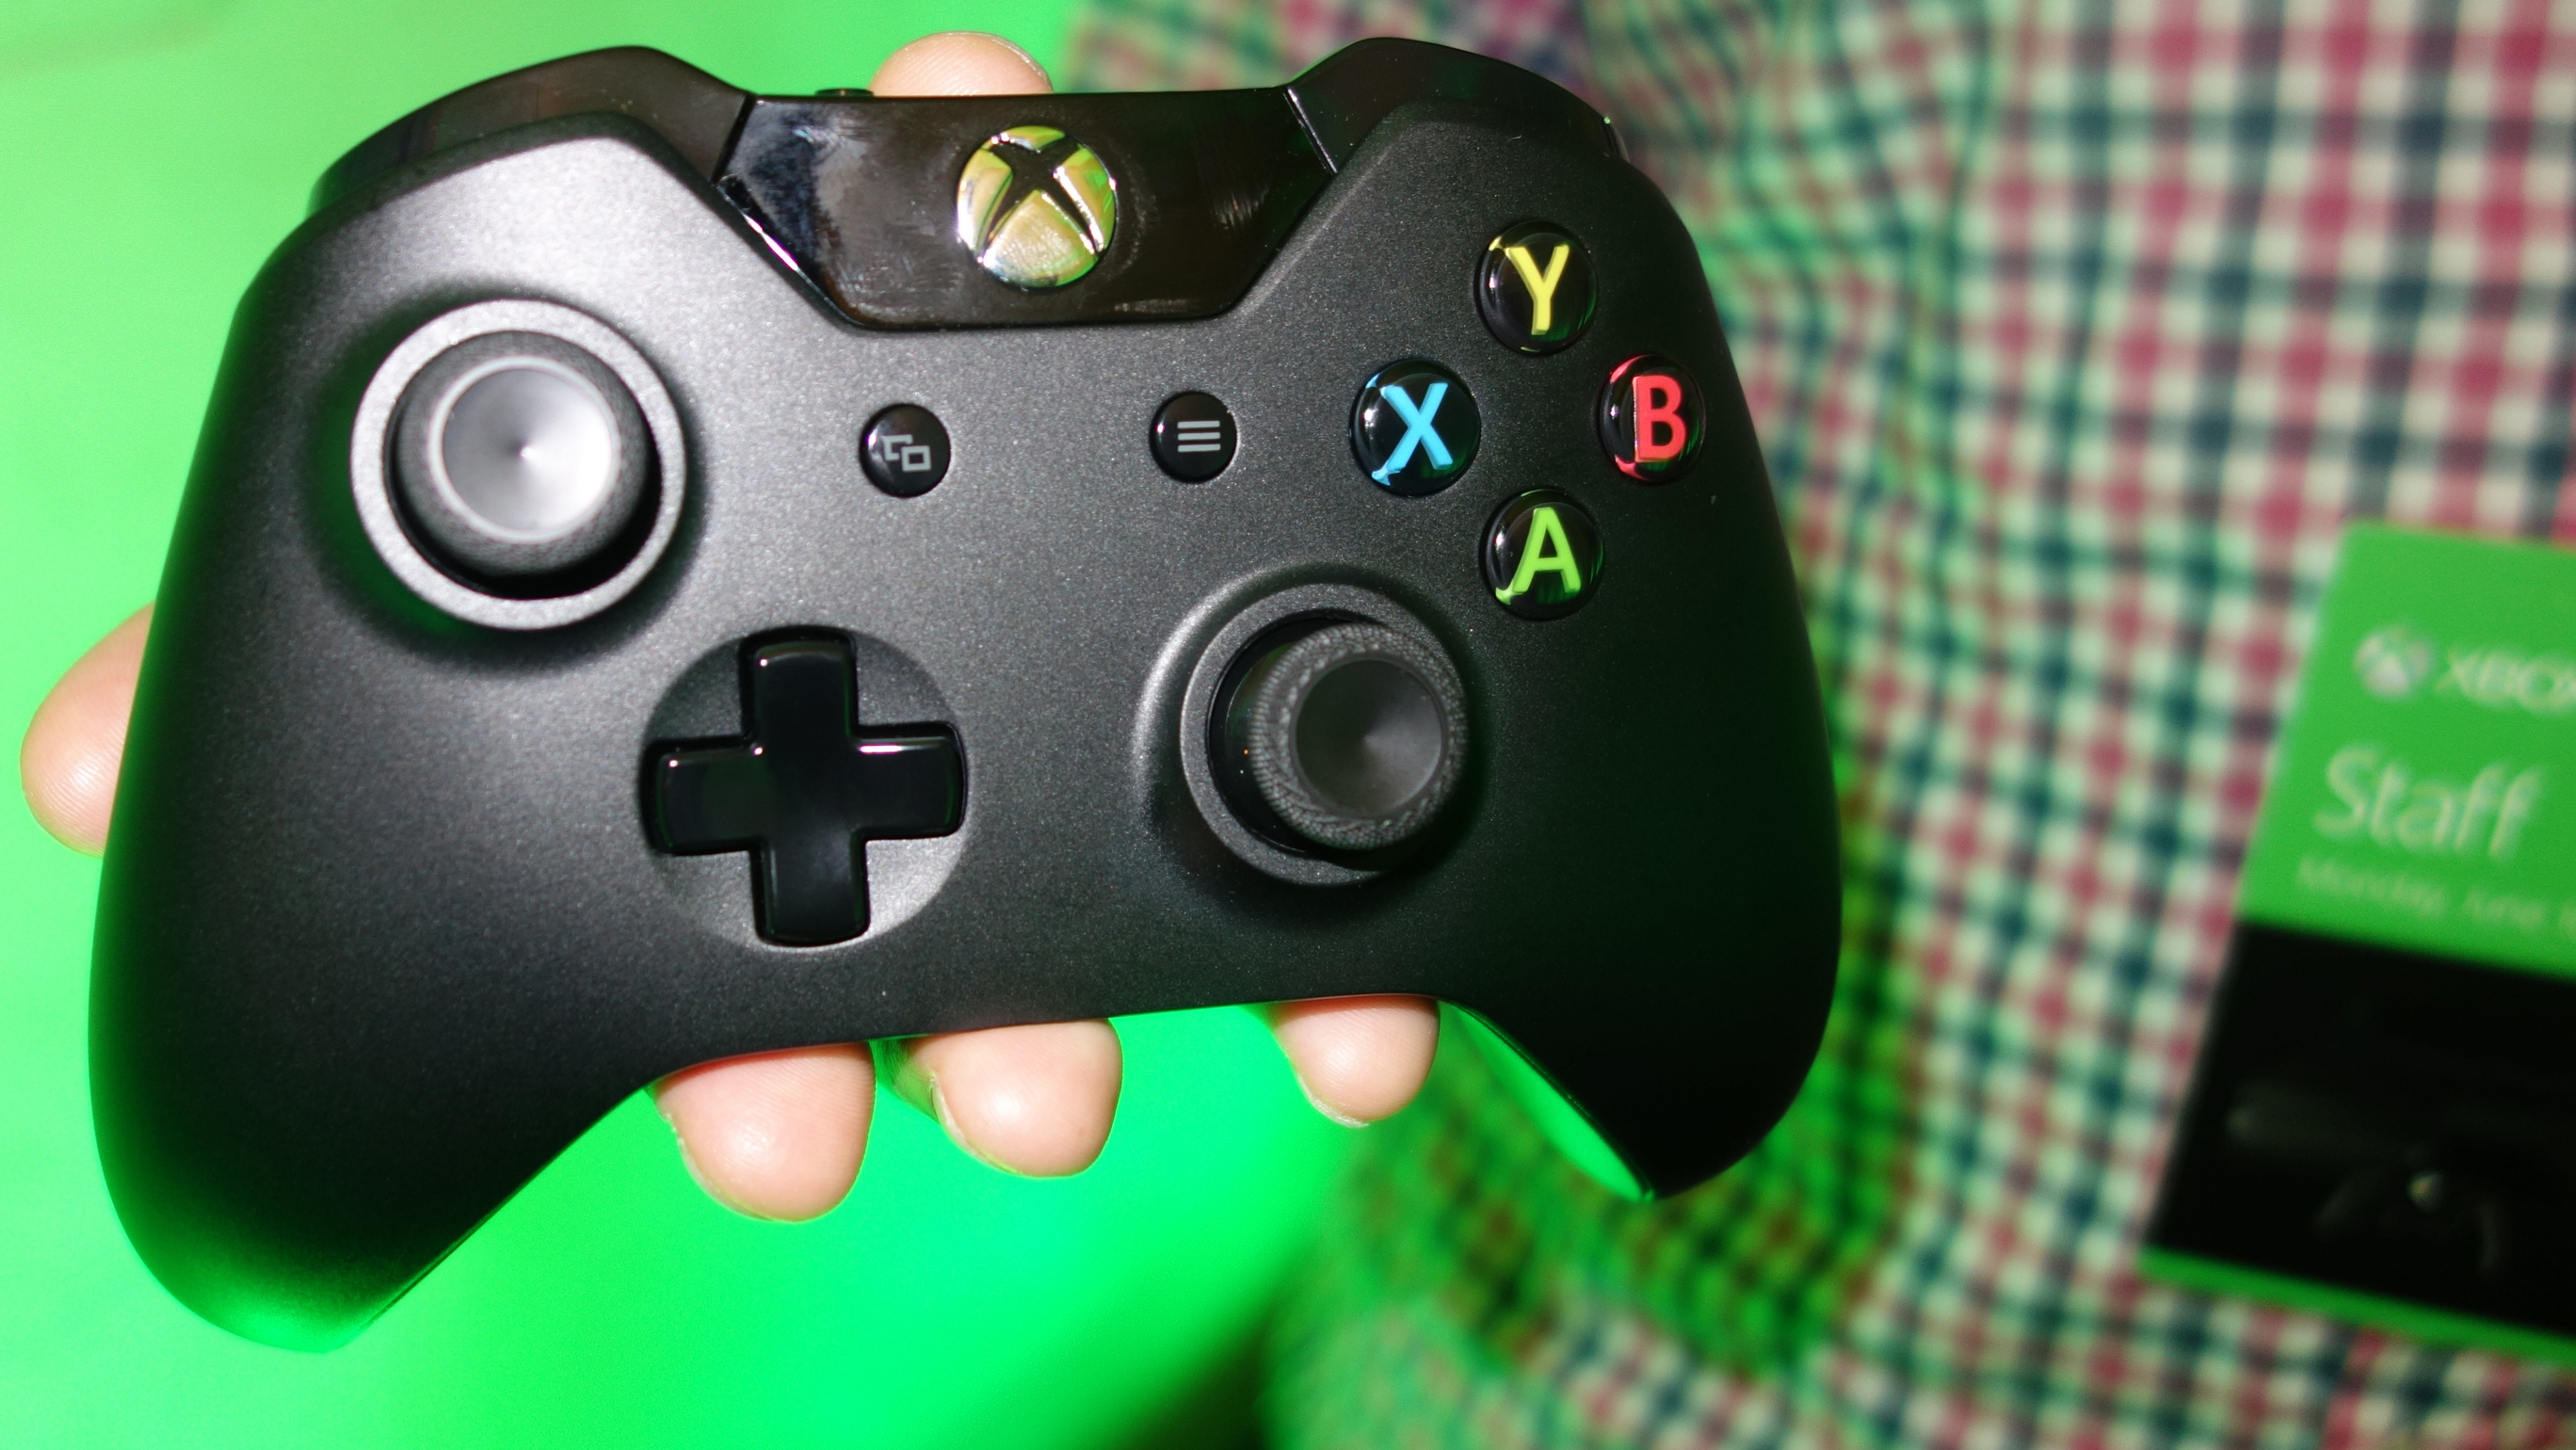 Microsoft issues fix for Xbox One controller issues | TechRadar